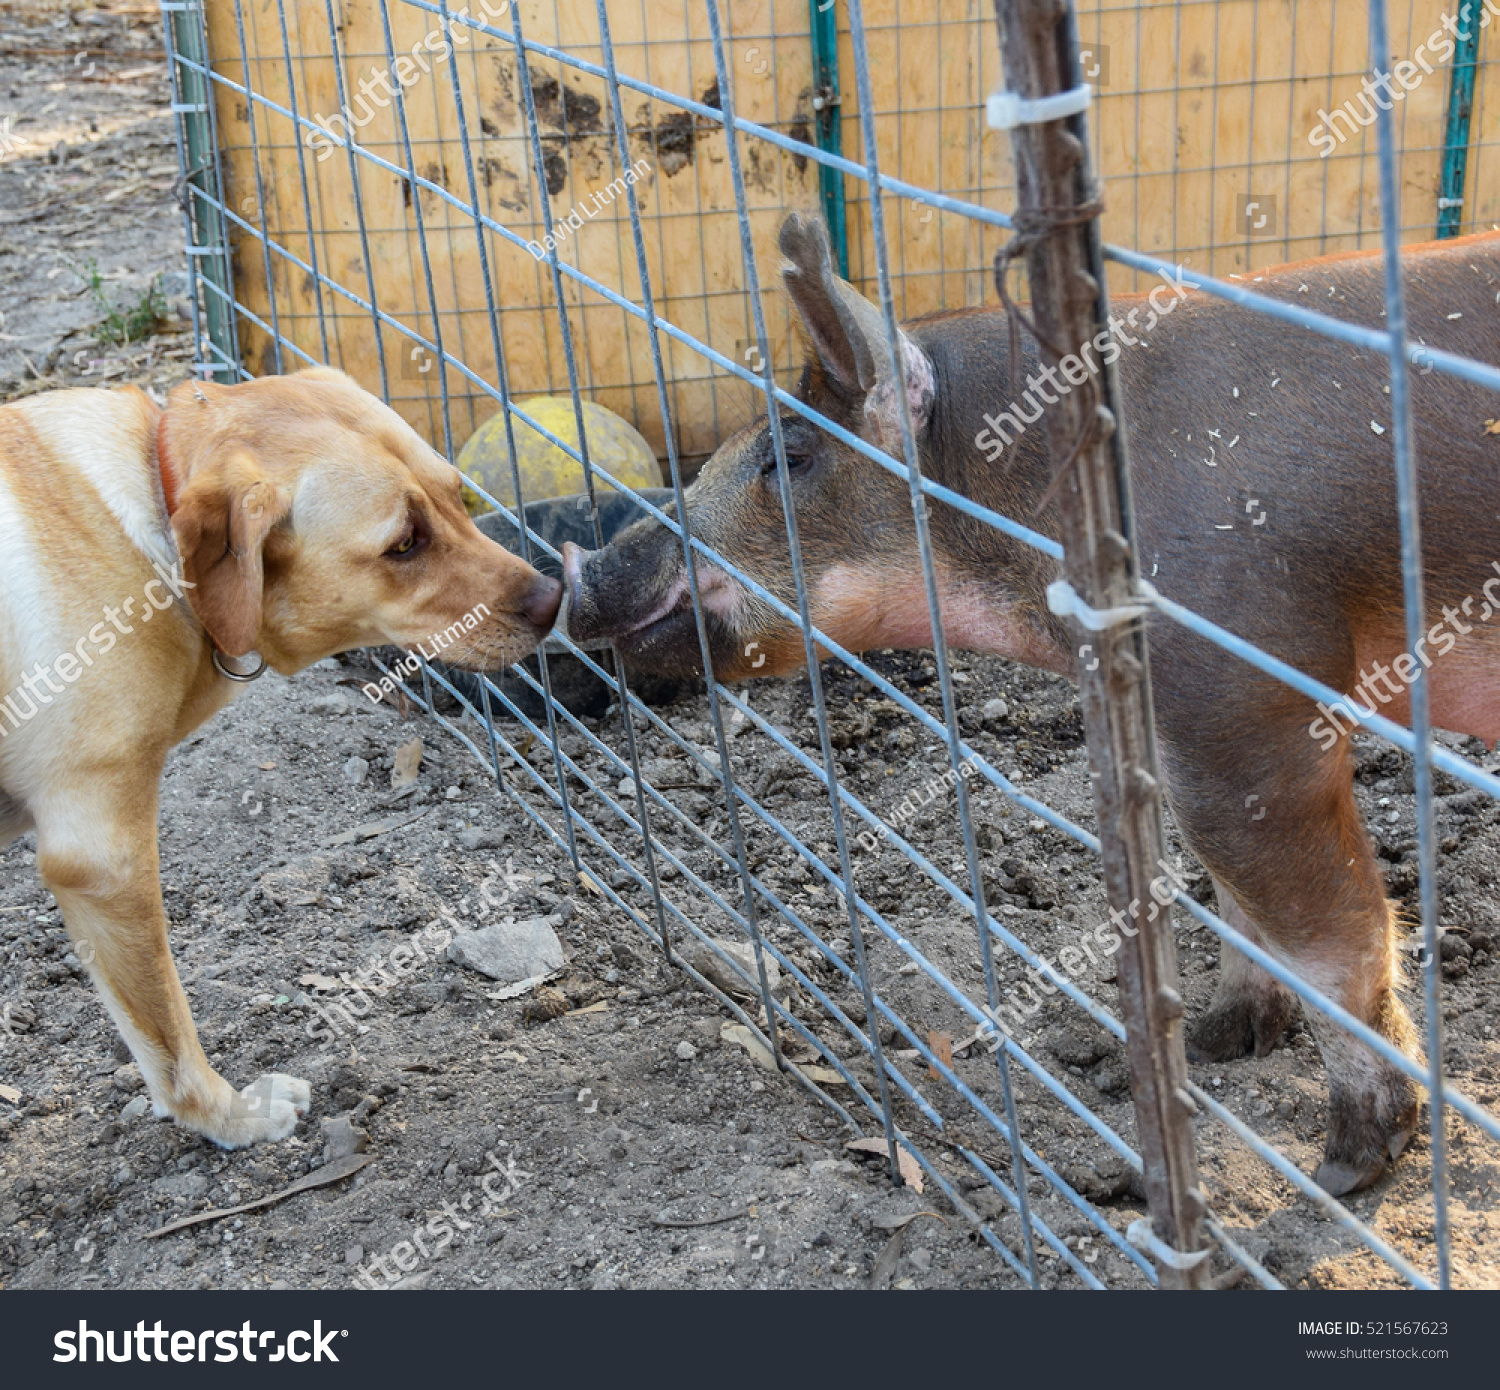 A curious dog (yellow Labrador Retriever) approaches and kisses a fenced pig before the Monterey County fair in central California.